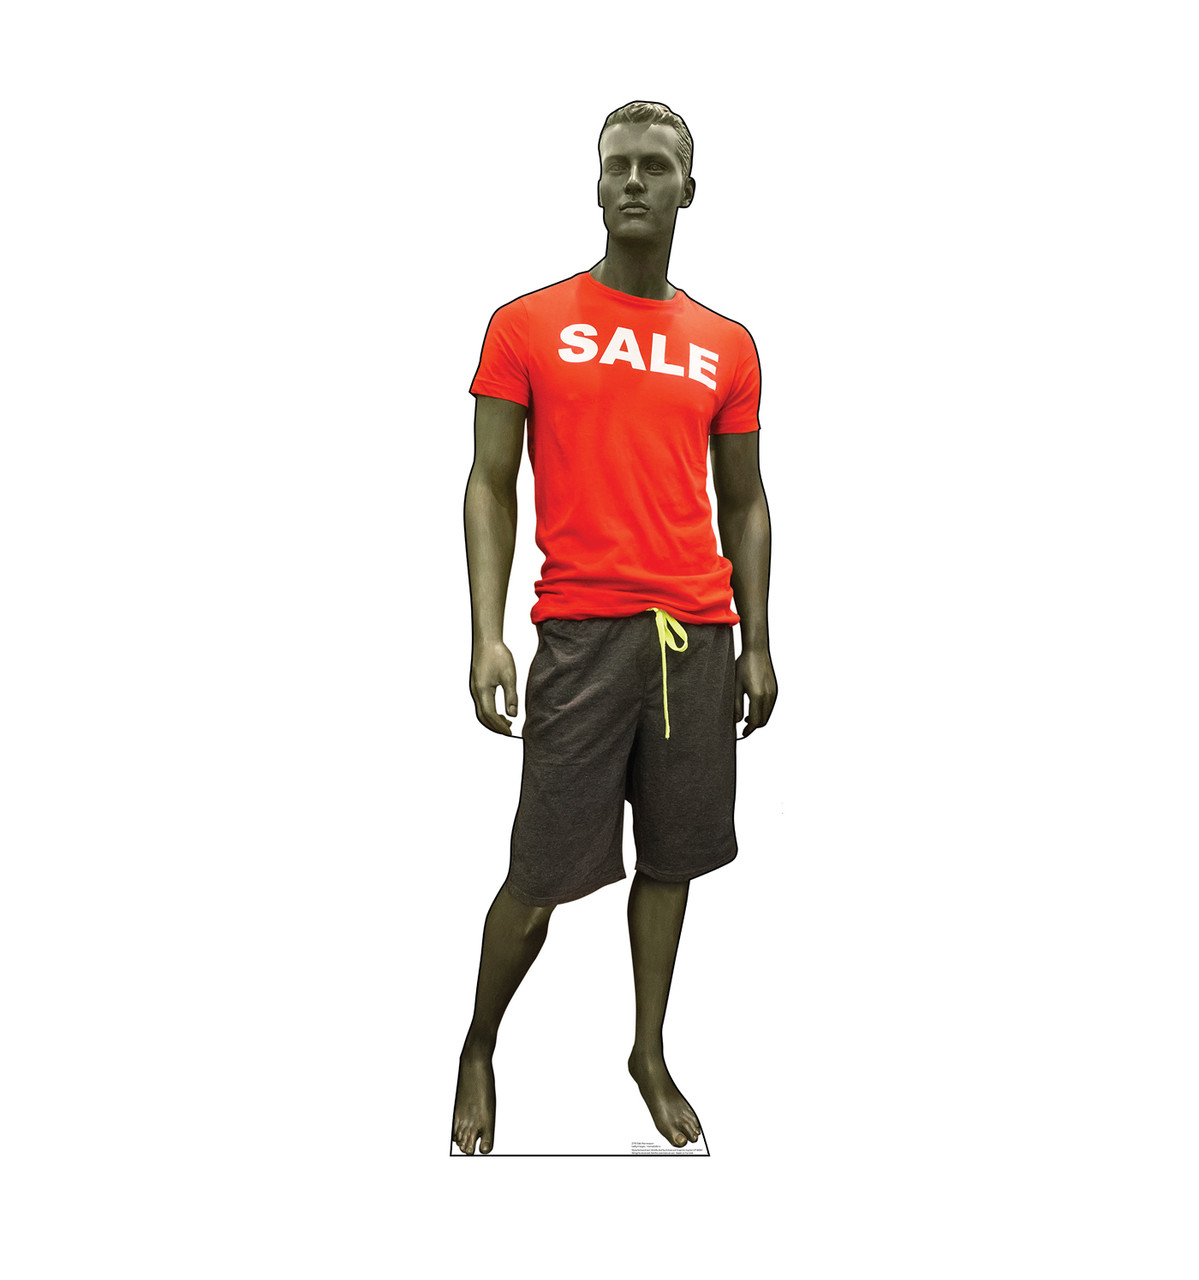 Life-size cardboard standee of a Sale Mannequin.